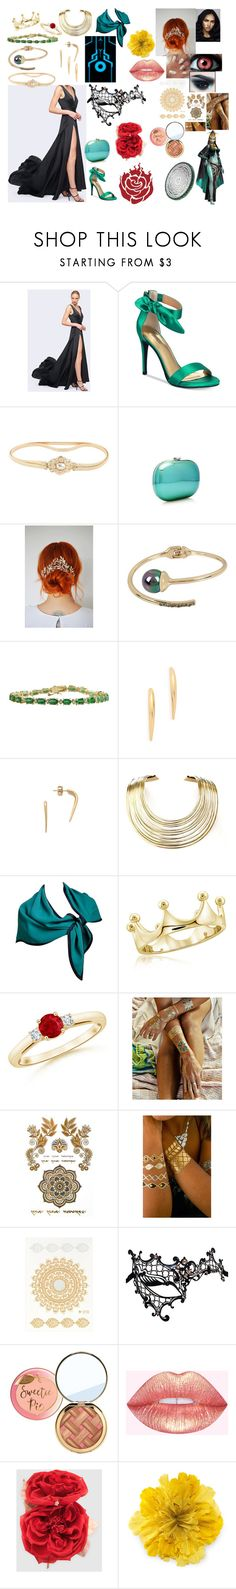 """""""Šafaq Teal: formal"""" by okamikun ❤ liked on Polyvore featuring Fame & Partners, Thalia Sodi, Schreiner, Jeffrey Levinson, Kenneth Cole, Venom, Alexis Bittar, Campbell, Bisjoux and Yves Saint Laurent"""